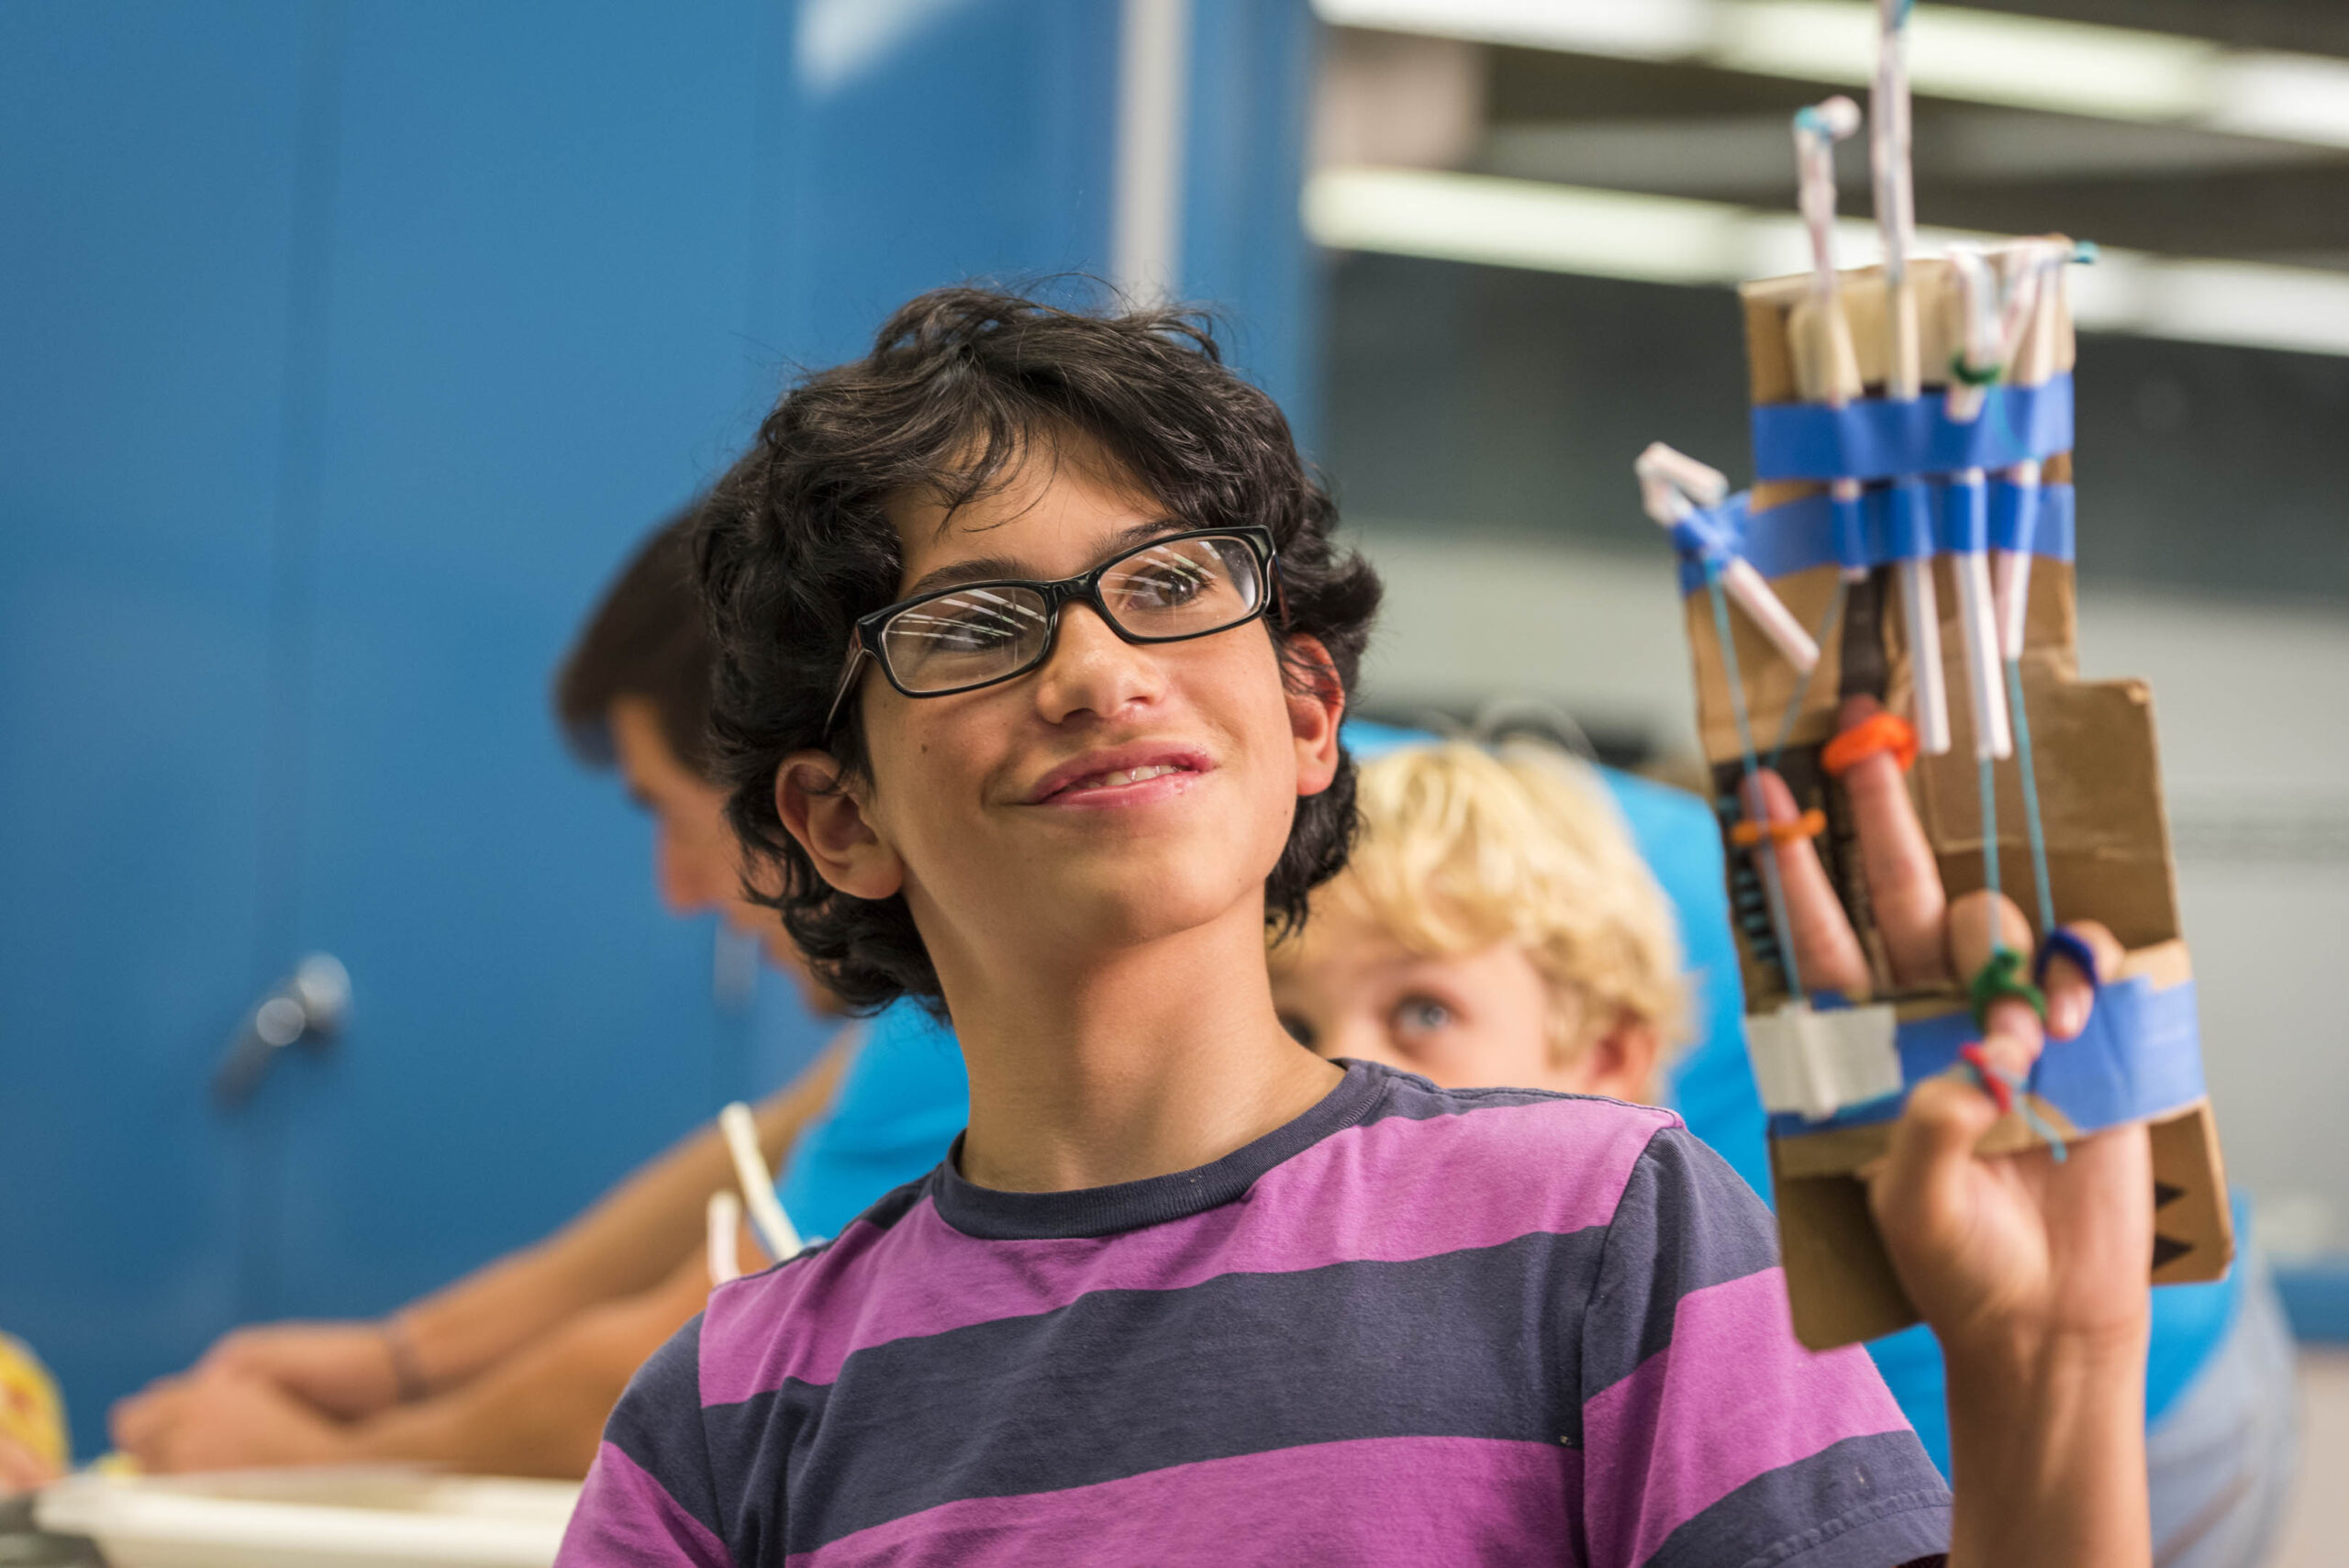 A student holding up his invention